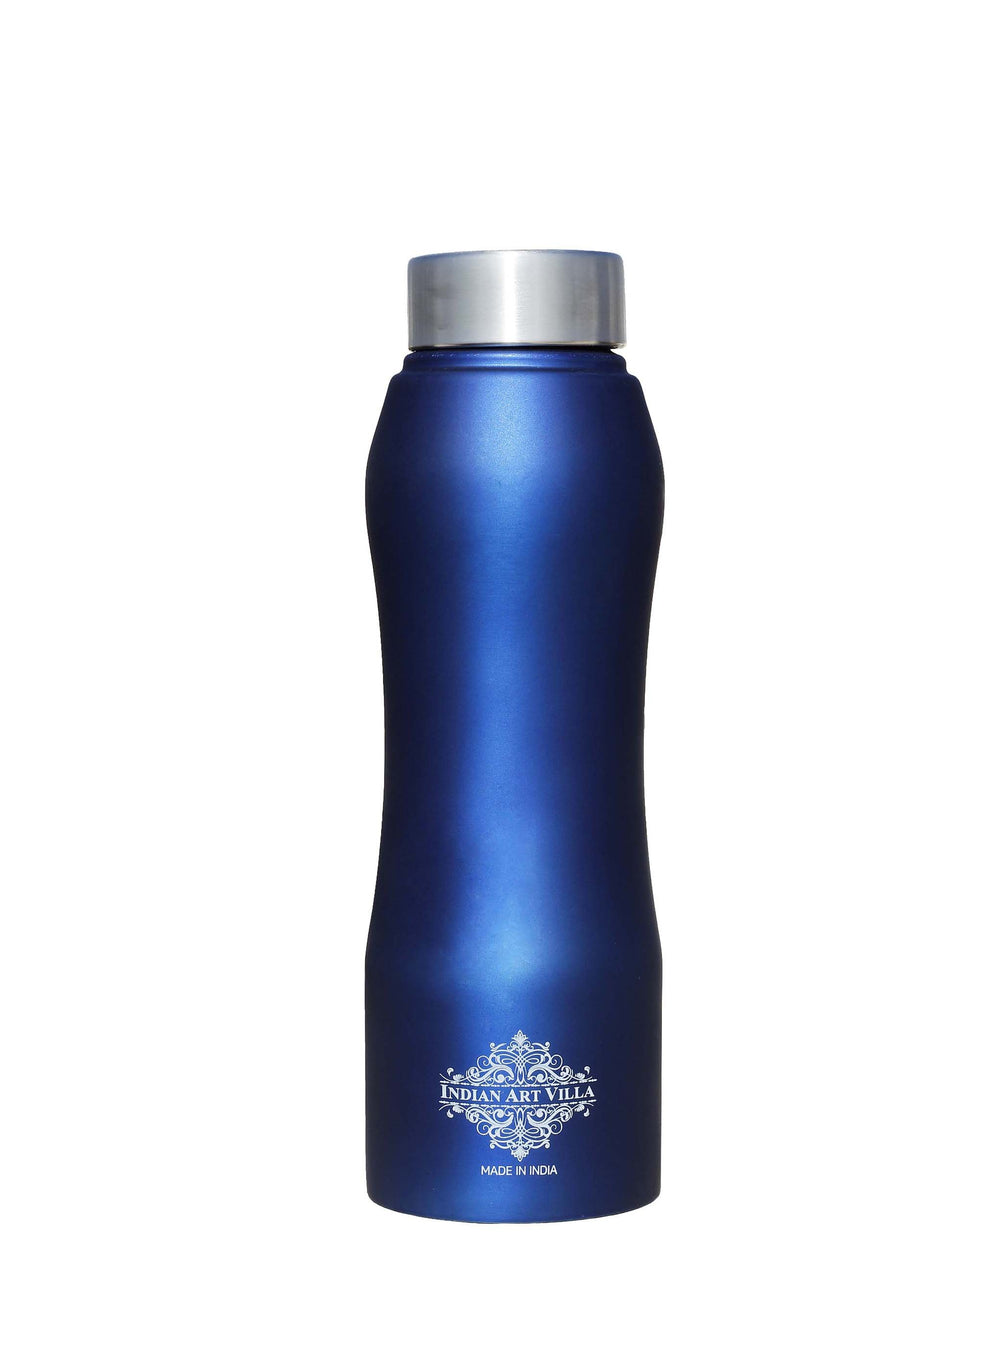 Steel Bottle Ergonomic Design With Steel Cap Blue Matt 25 oz